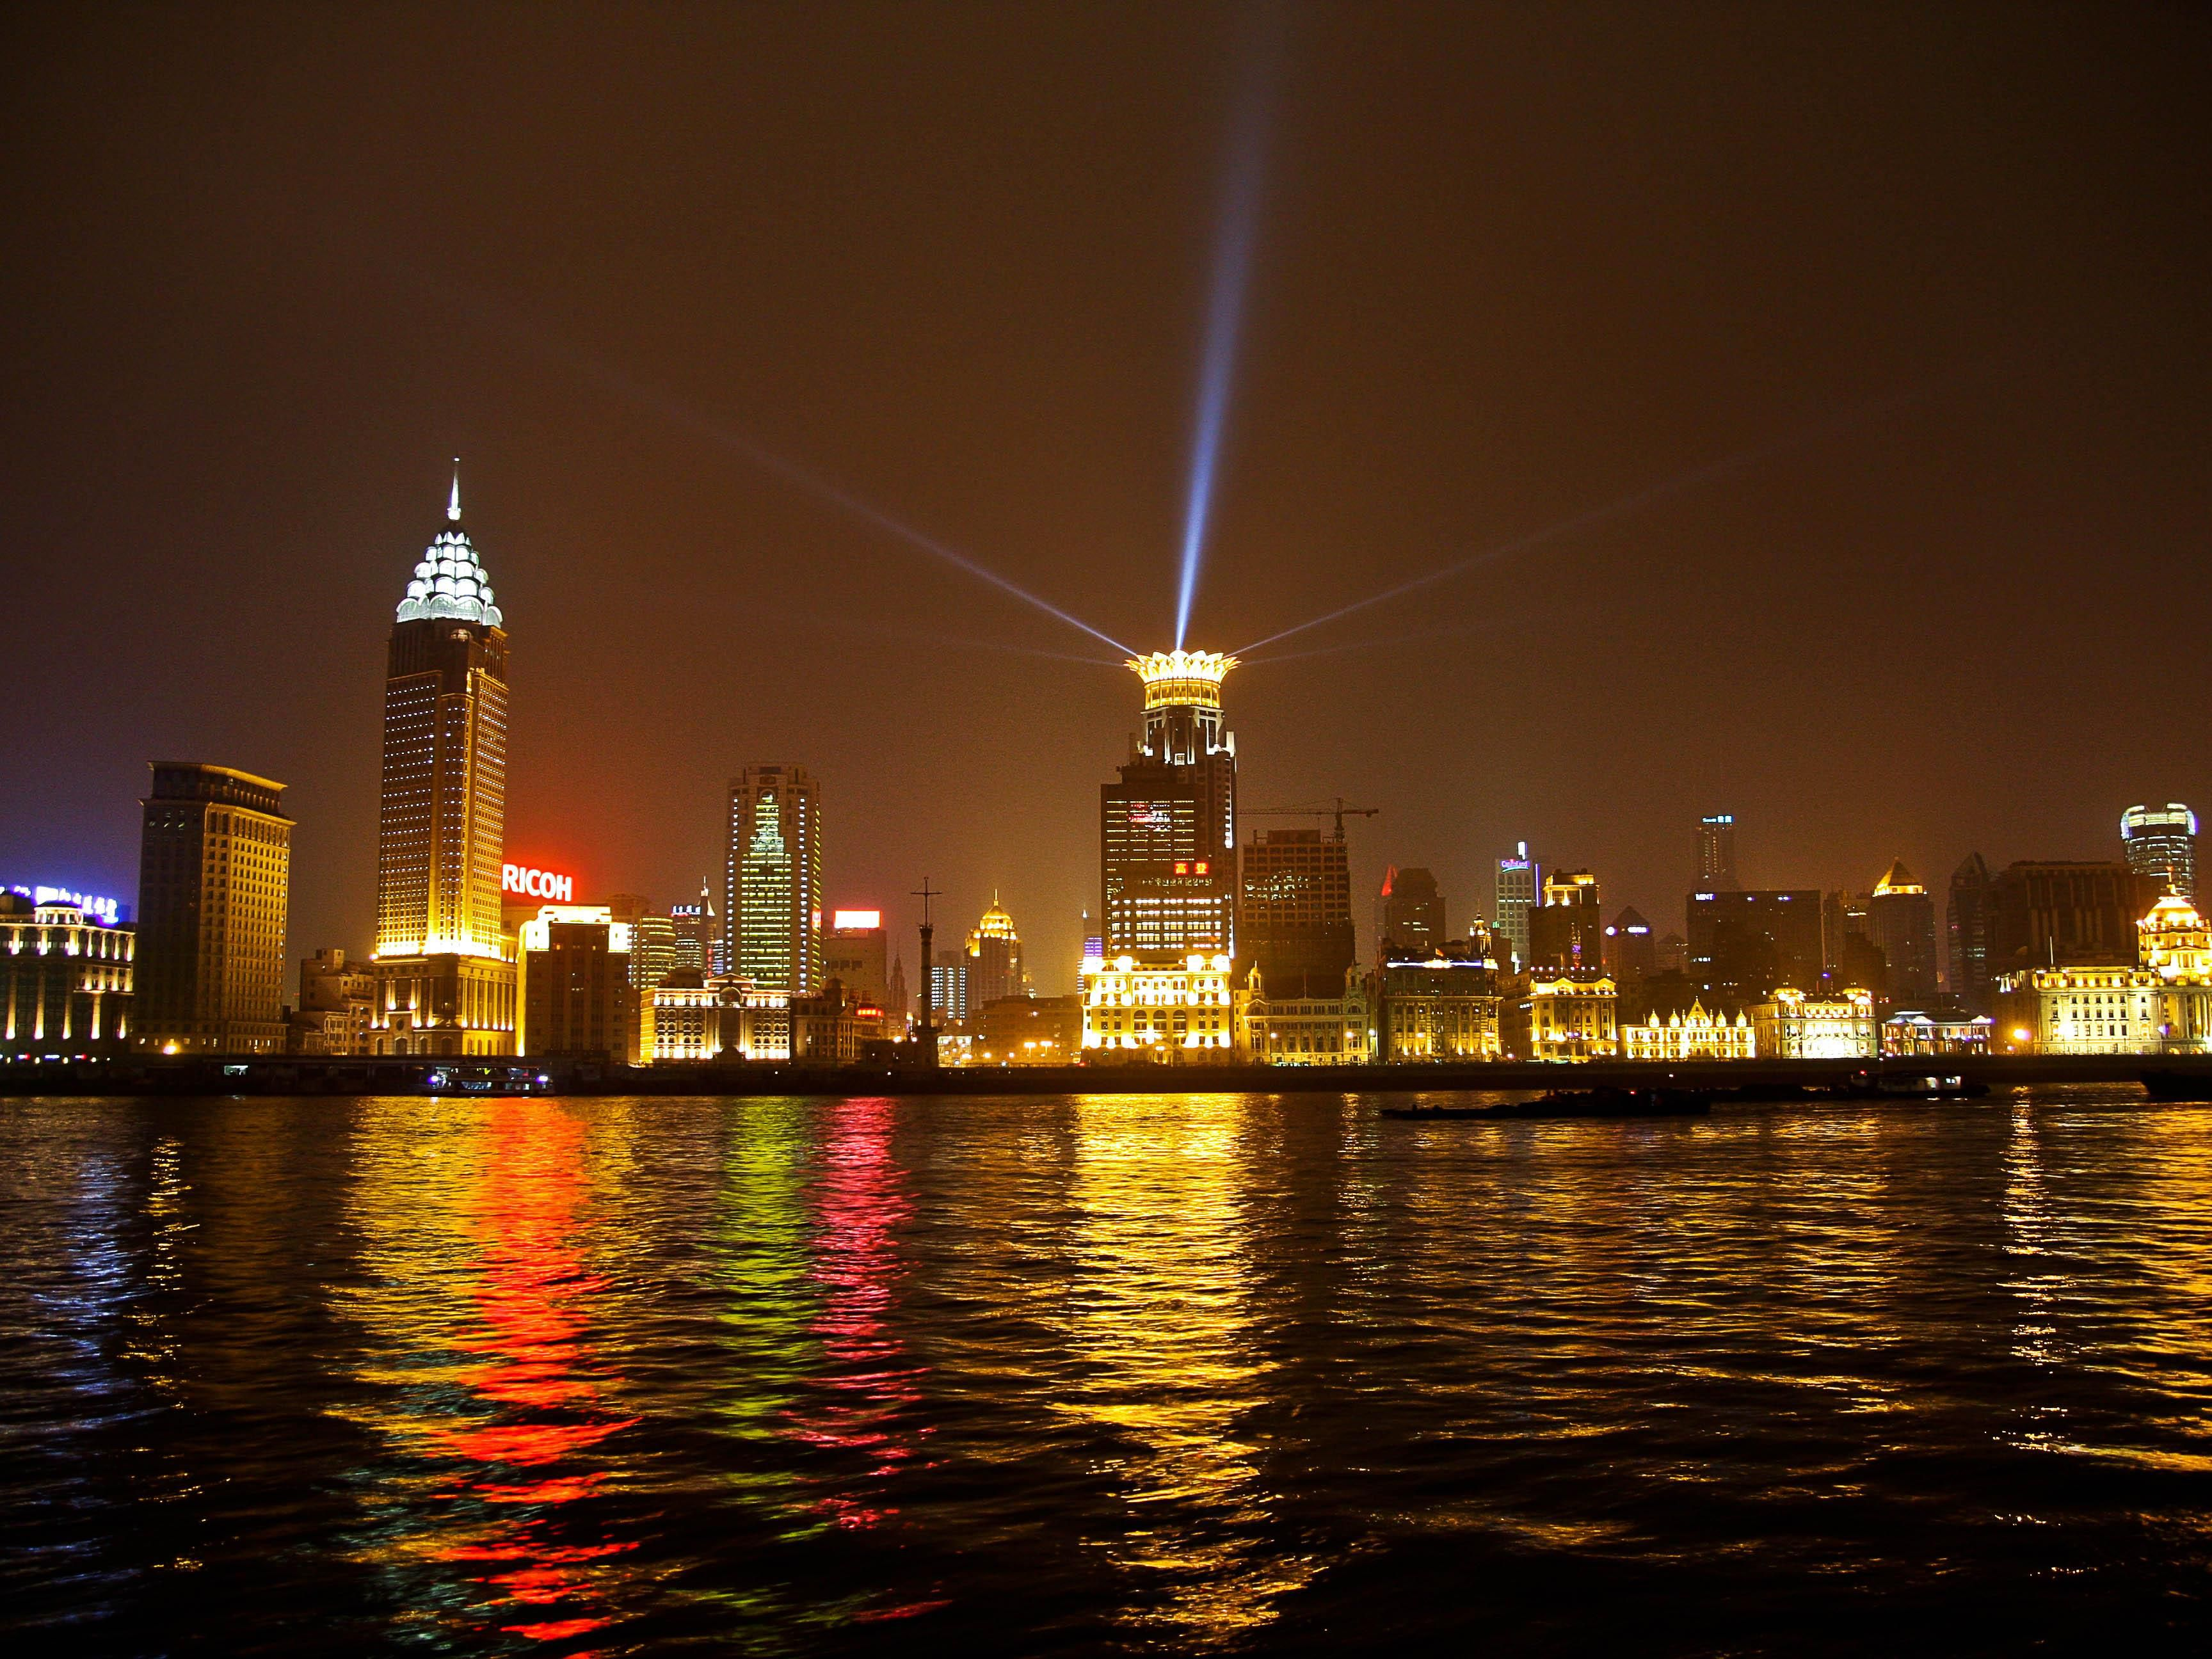 Scenery / Landscape - Night View of Pudong